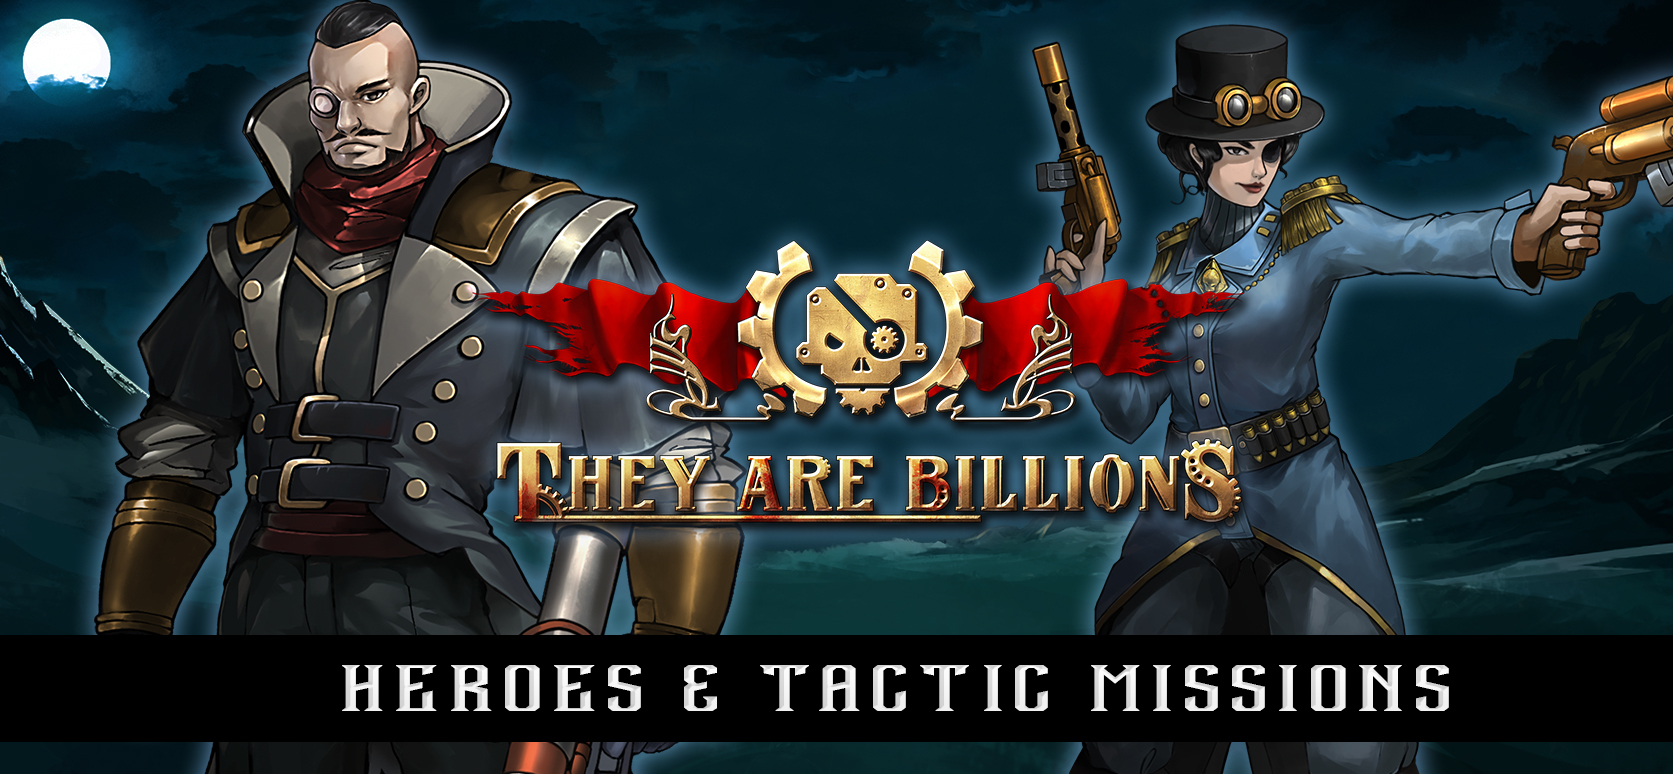 They Are Billions - Heroes & Tactic Missions news - Mod DB